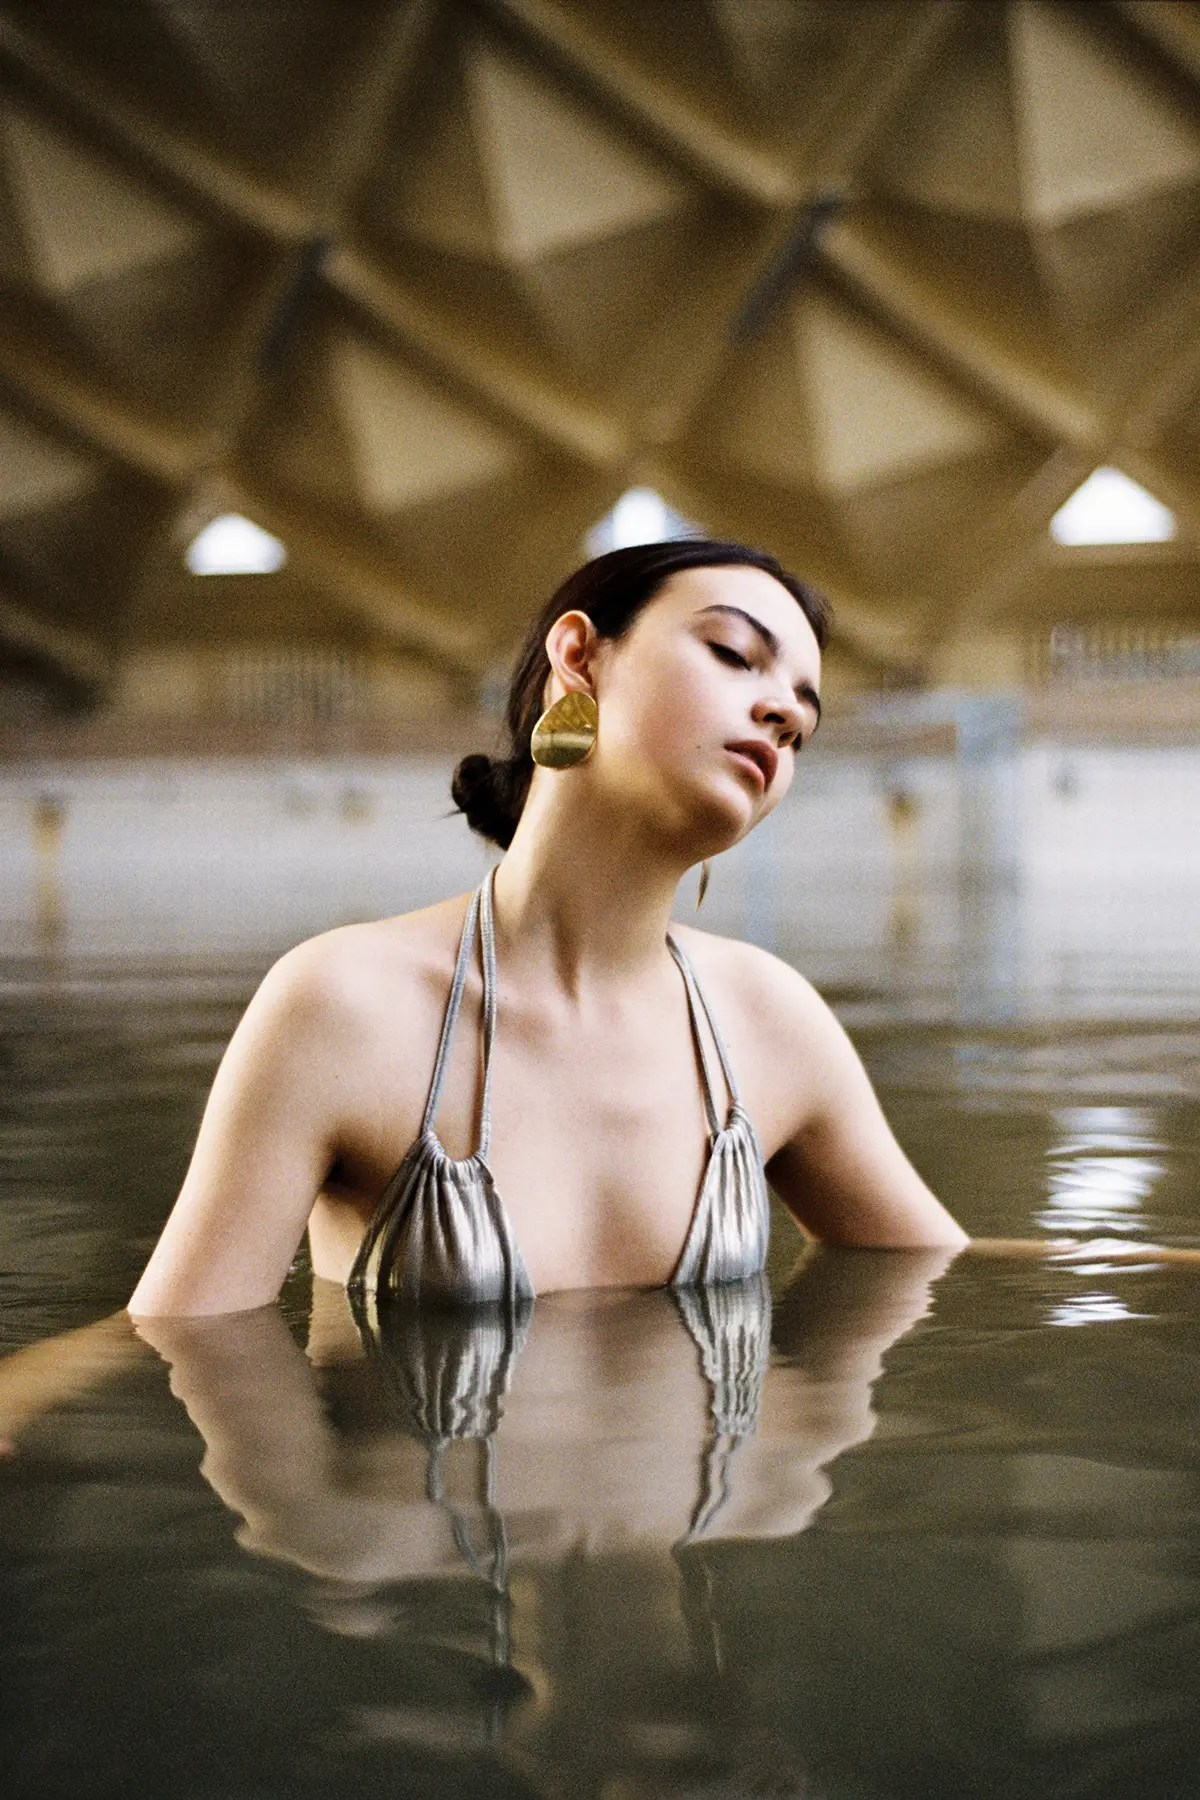 Lena Pogrebnaya Used Kodak Portra for this Stunning Fashion Editorial